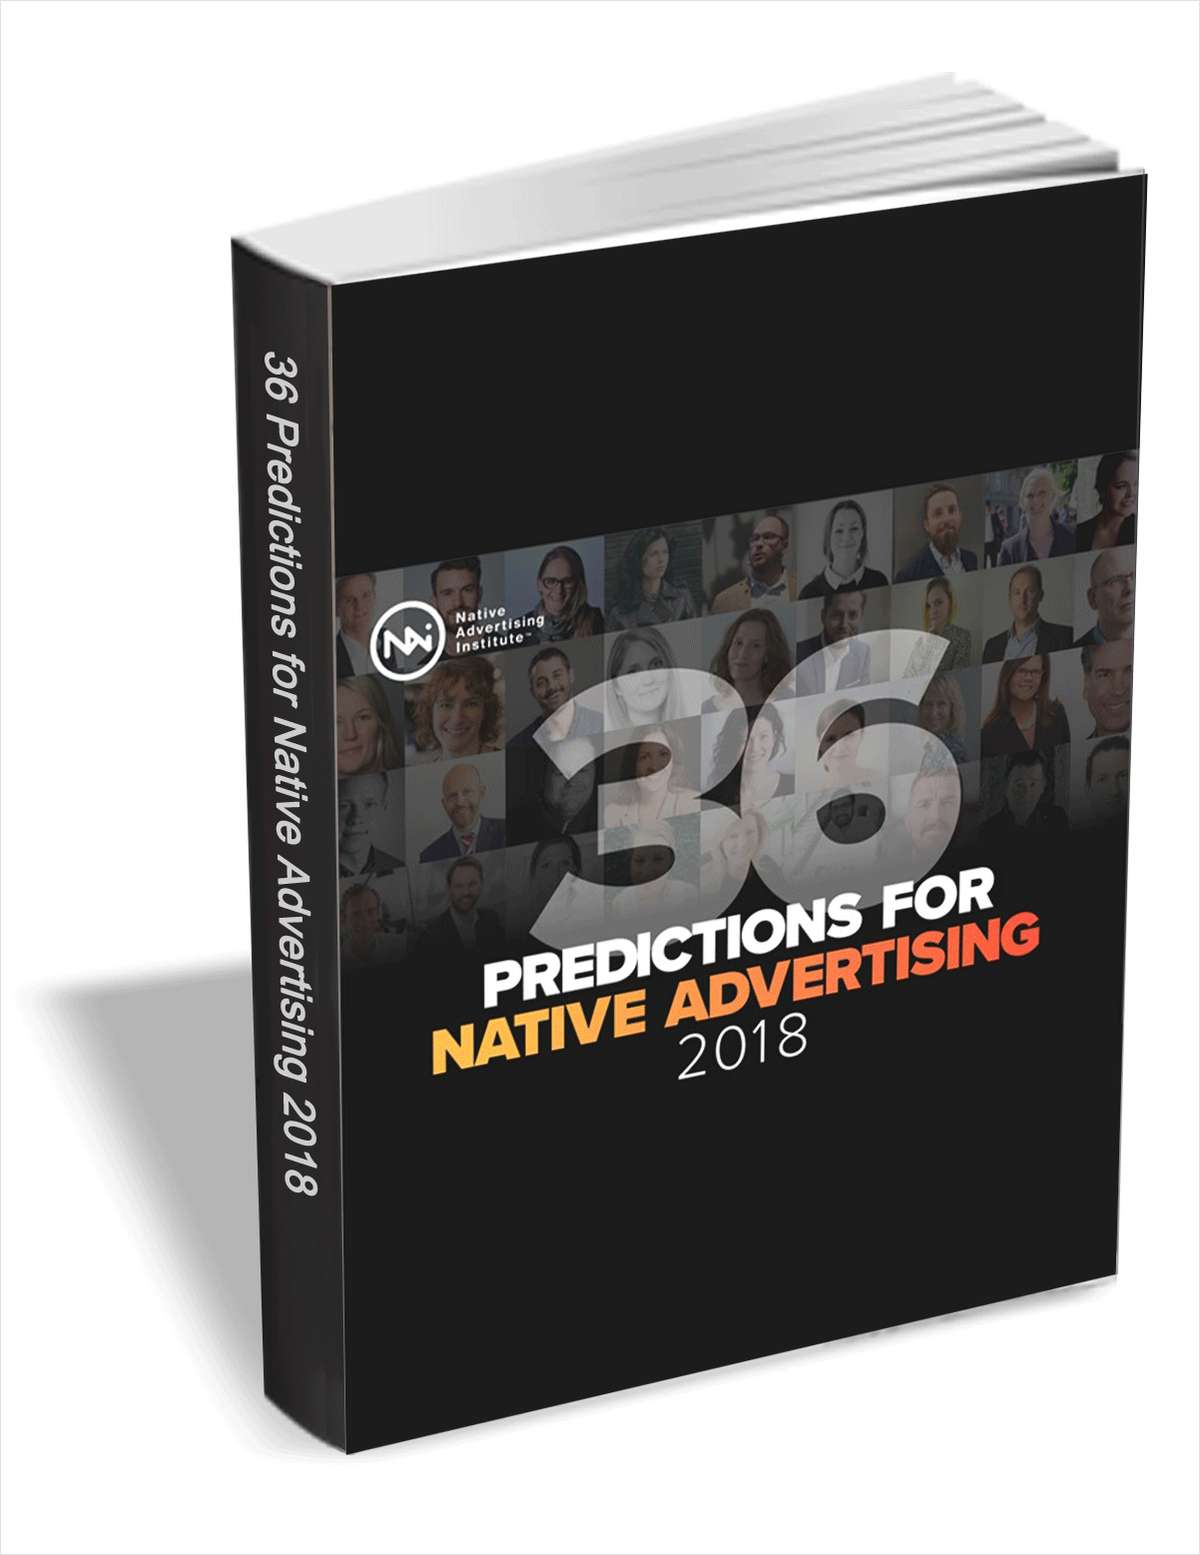 36 Predictions for Native Advertising in 2018